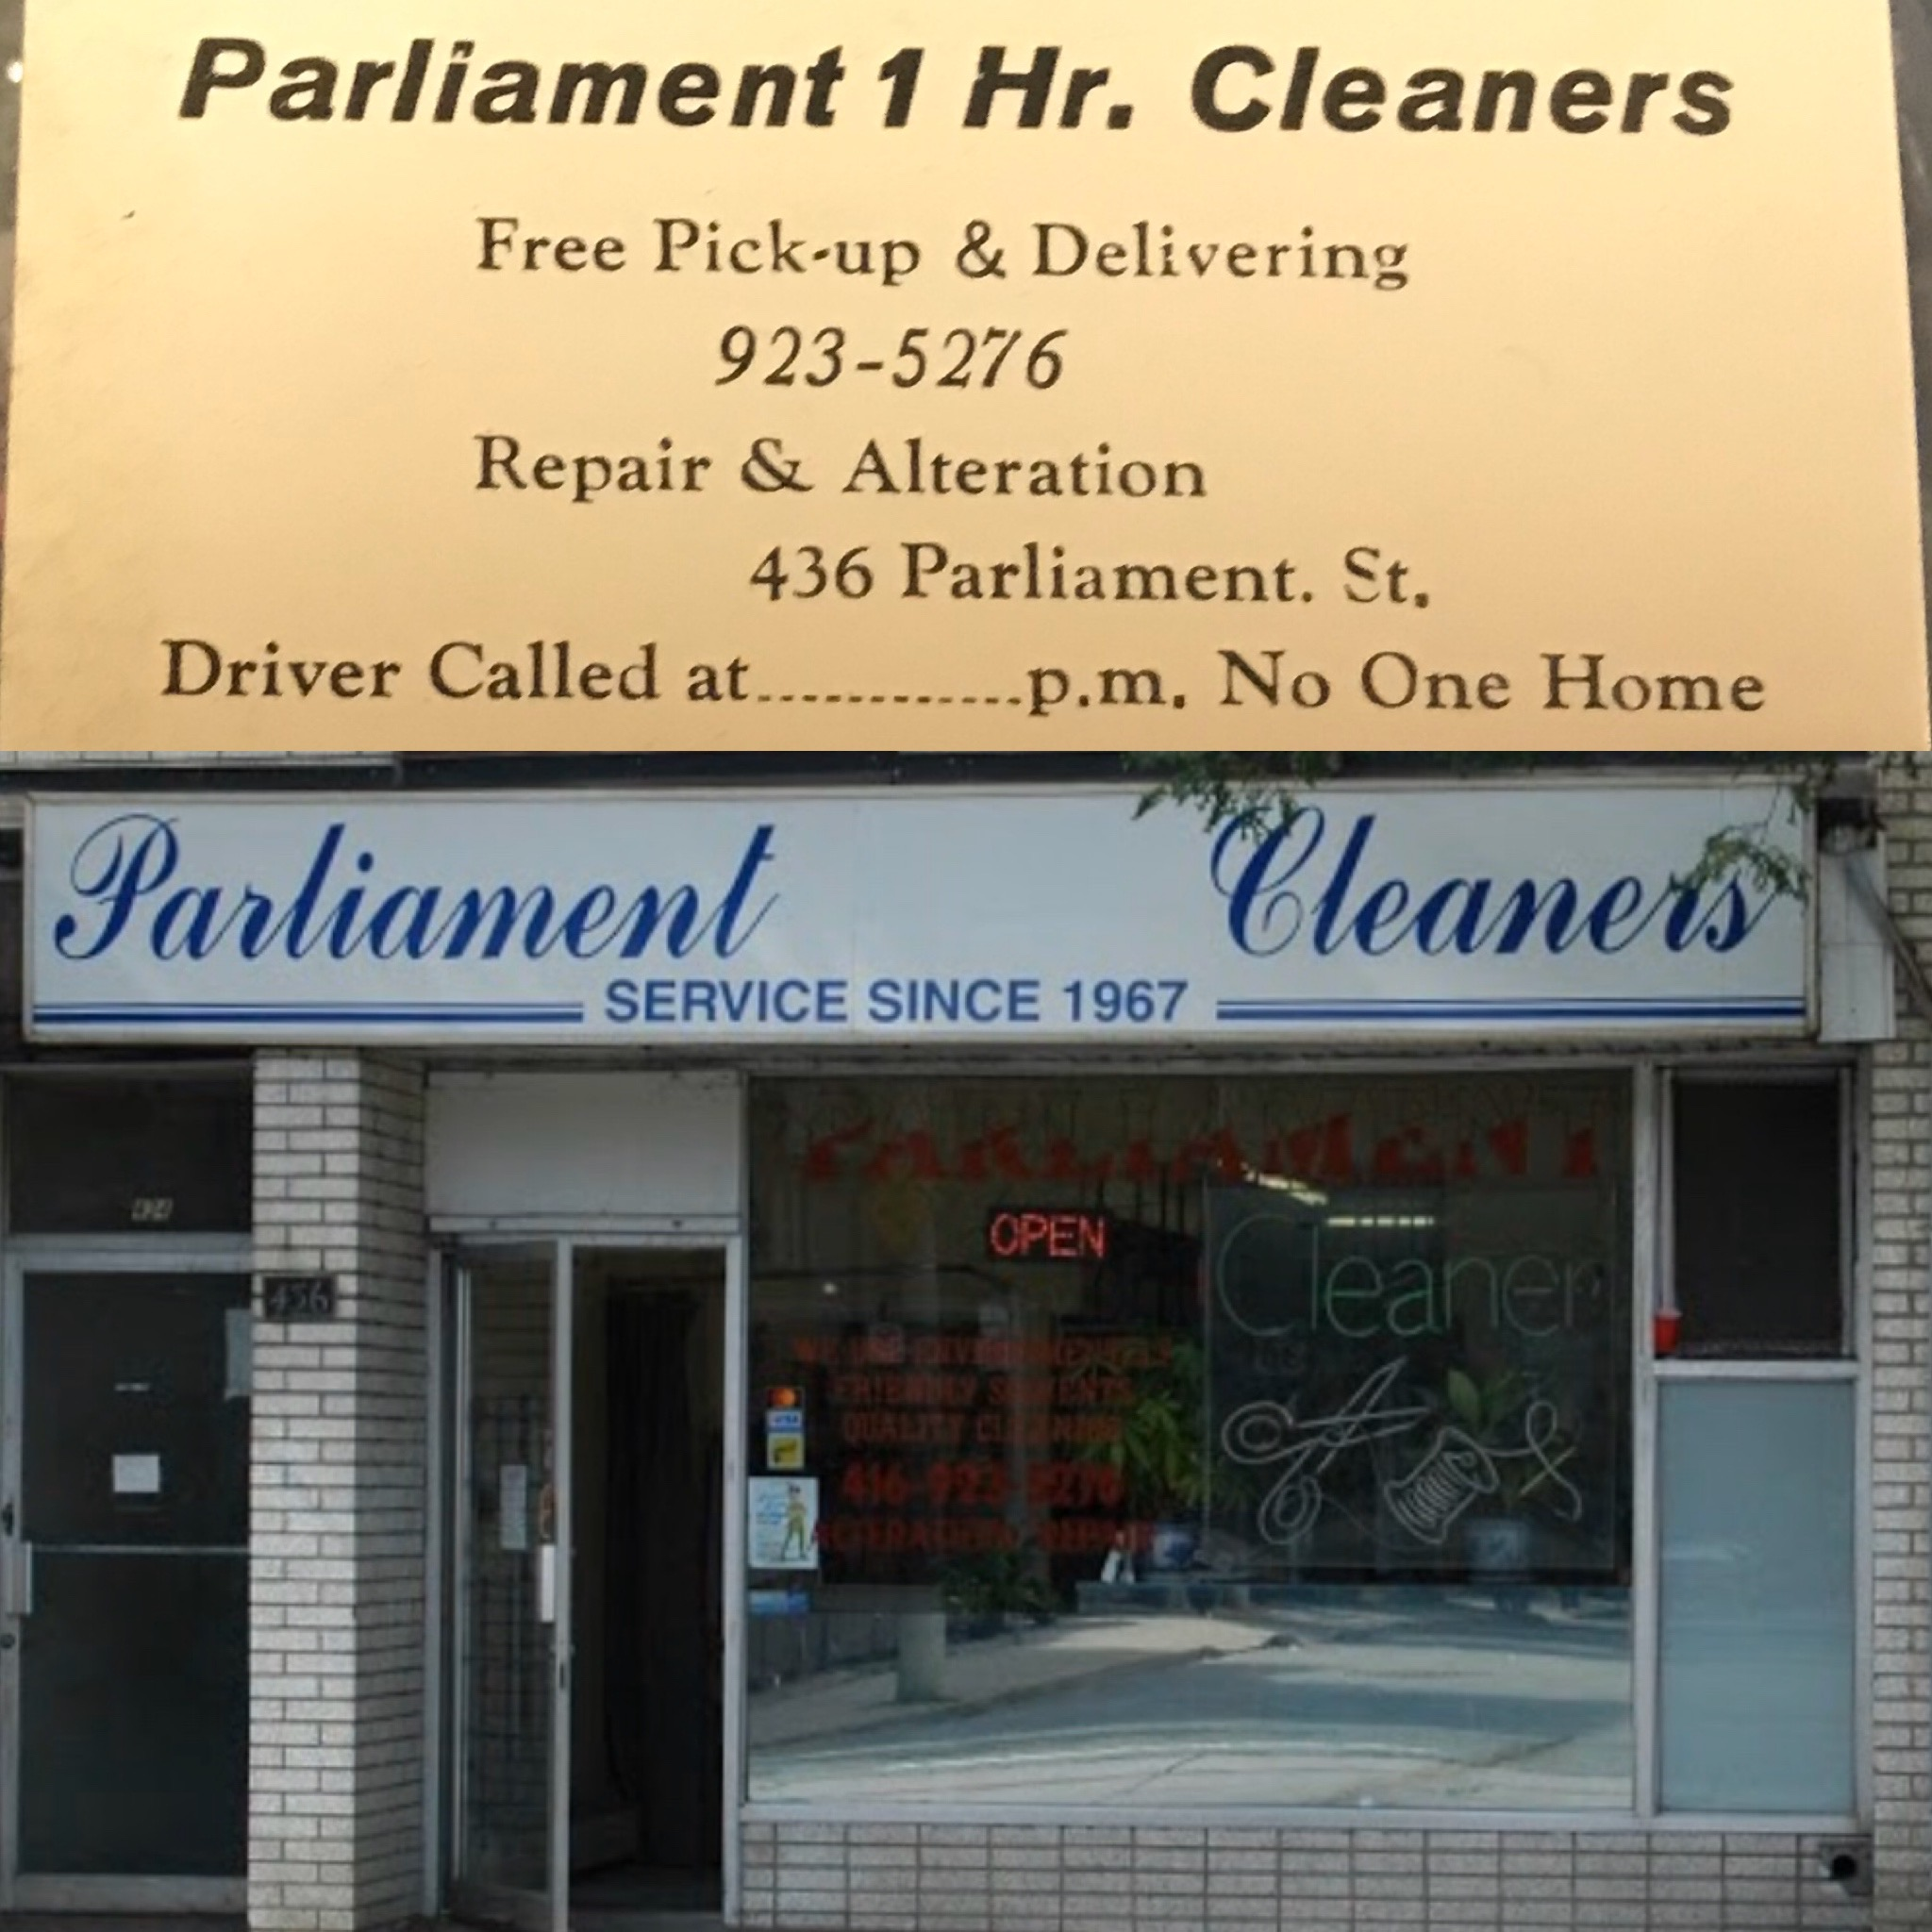 Parliament 1 Hr. Cleaners